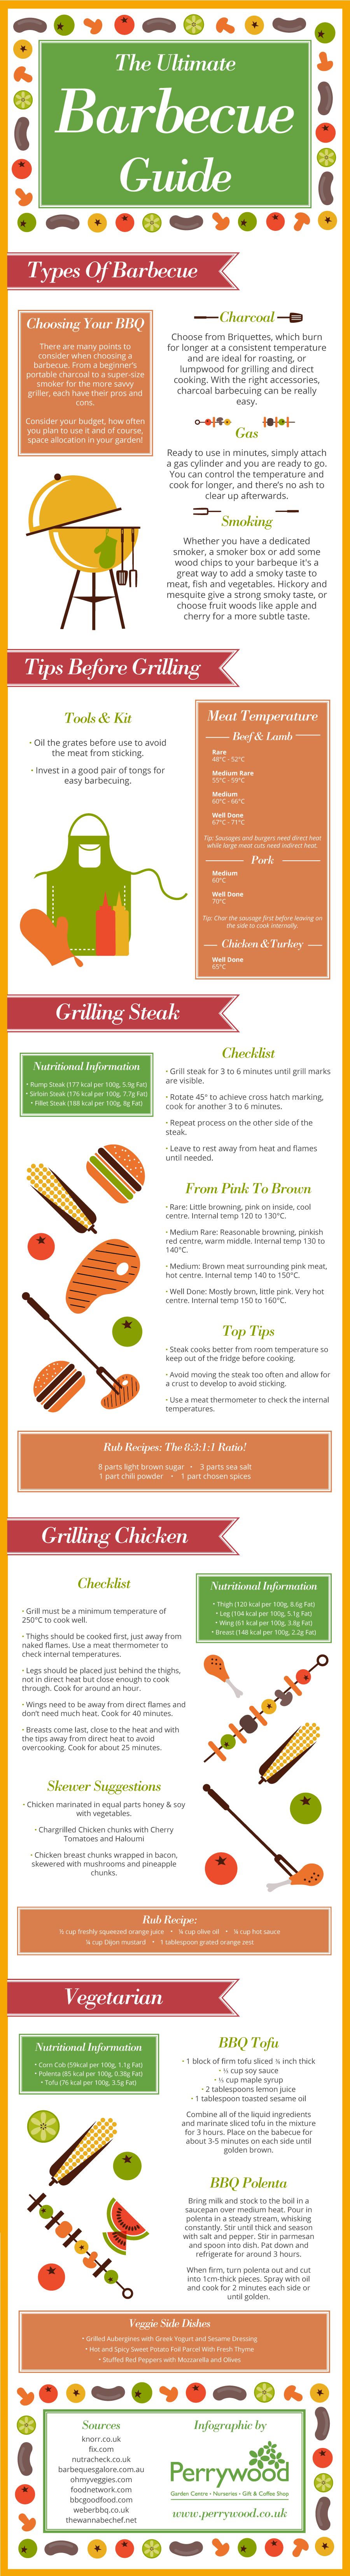 bbq guide infographic